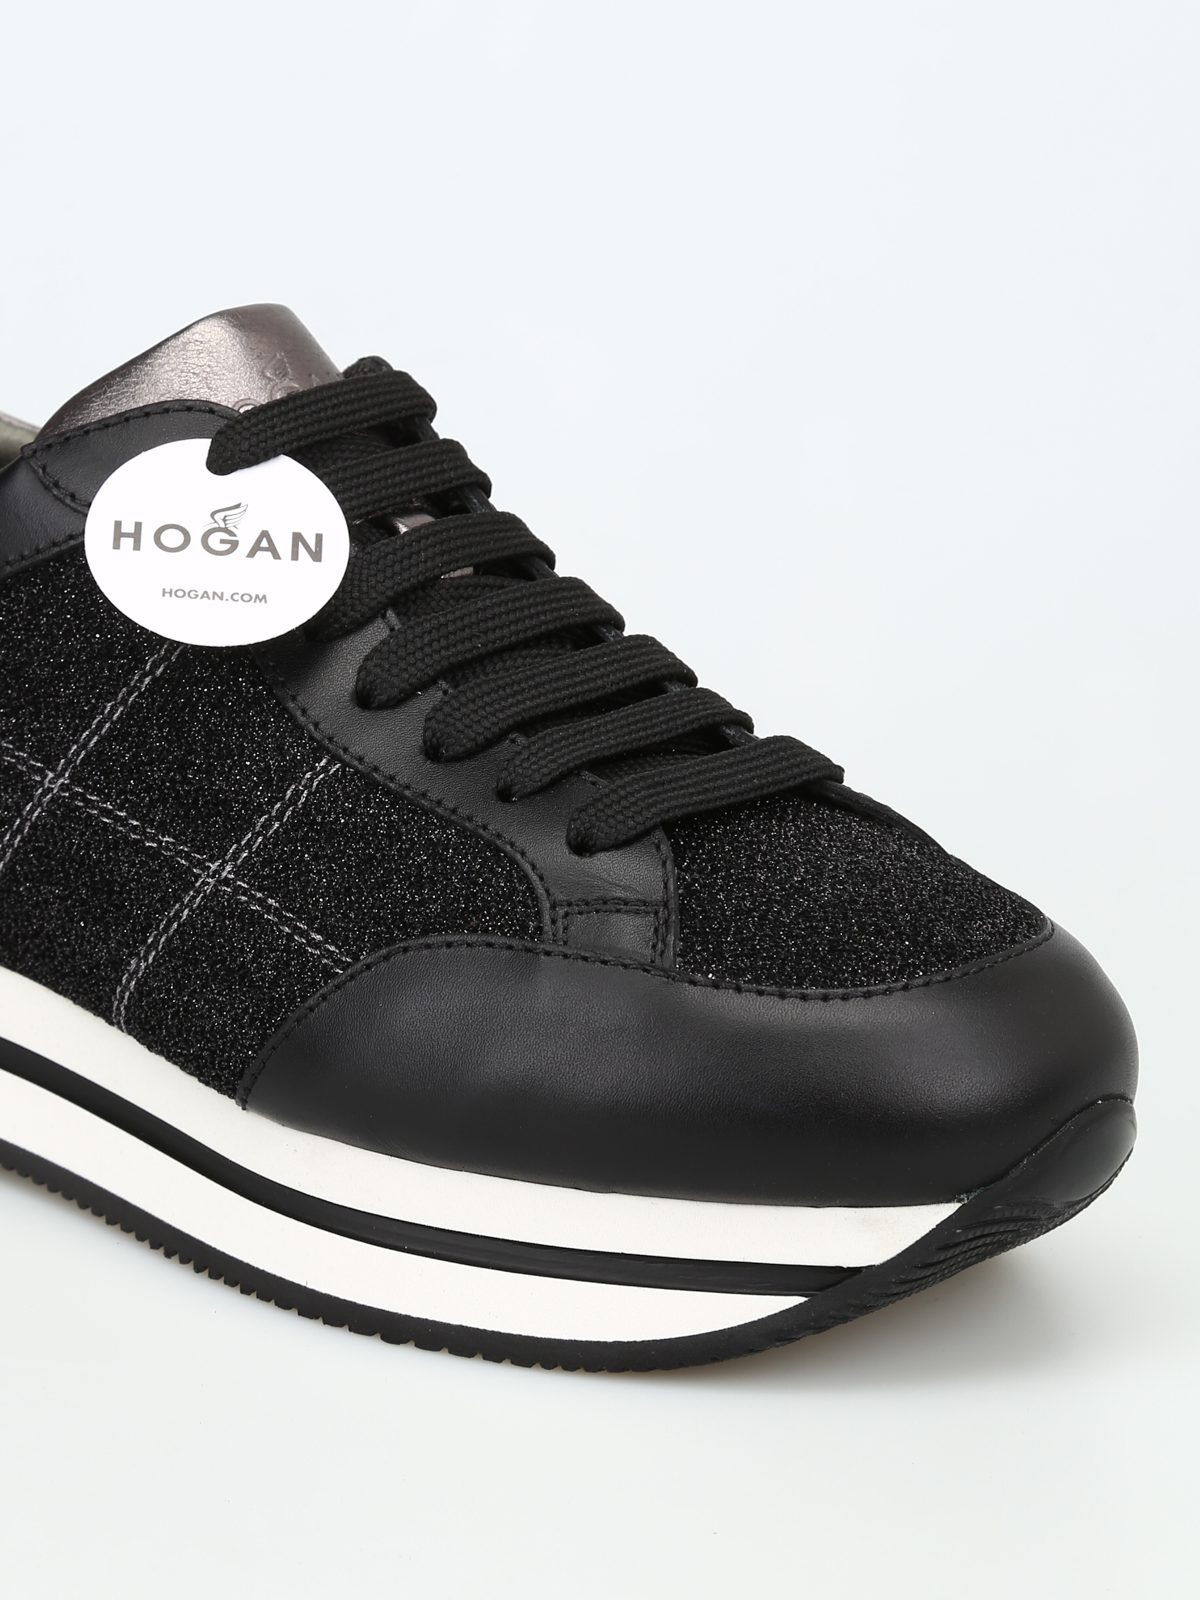 Trainers Hogan - H222 black leather and glitter sneakers ...